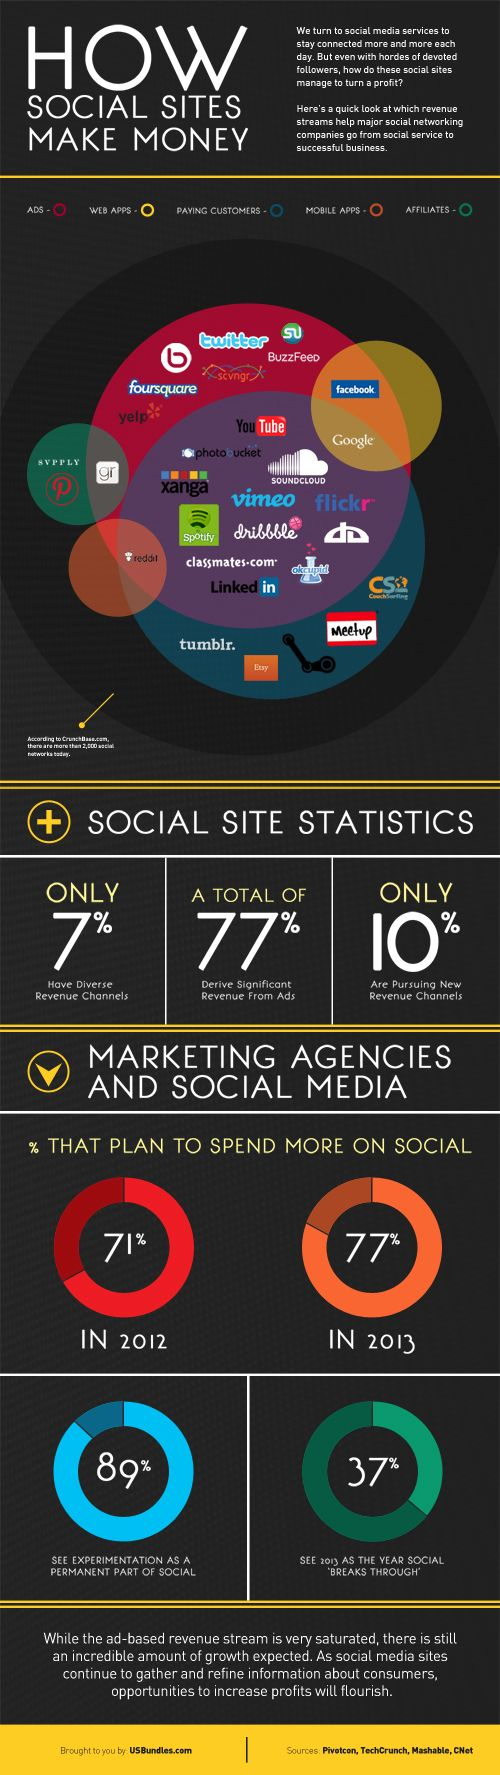 How Social Media Sites Make Their Money [Infographic]